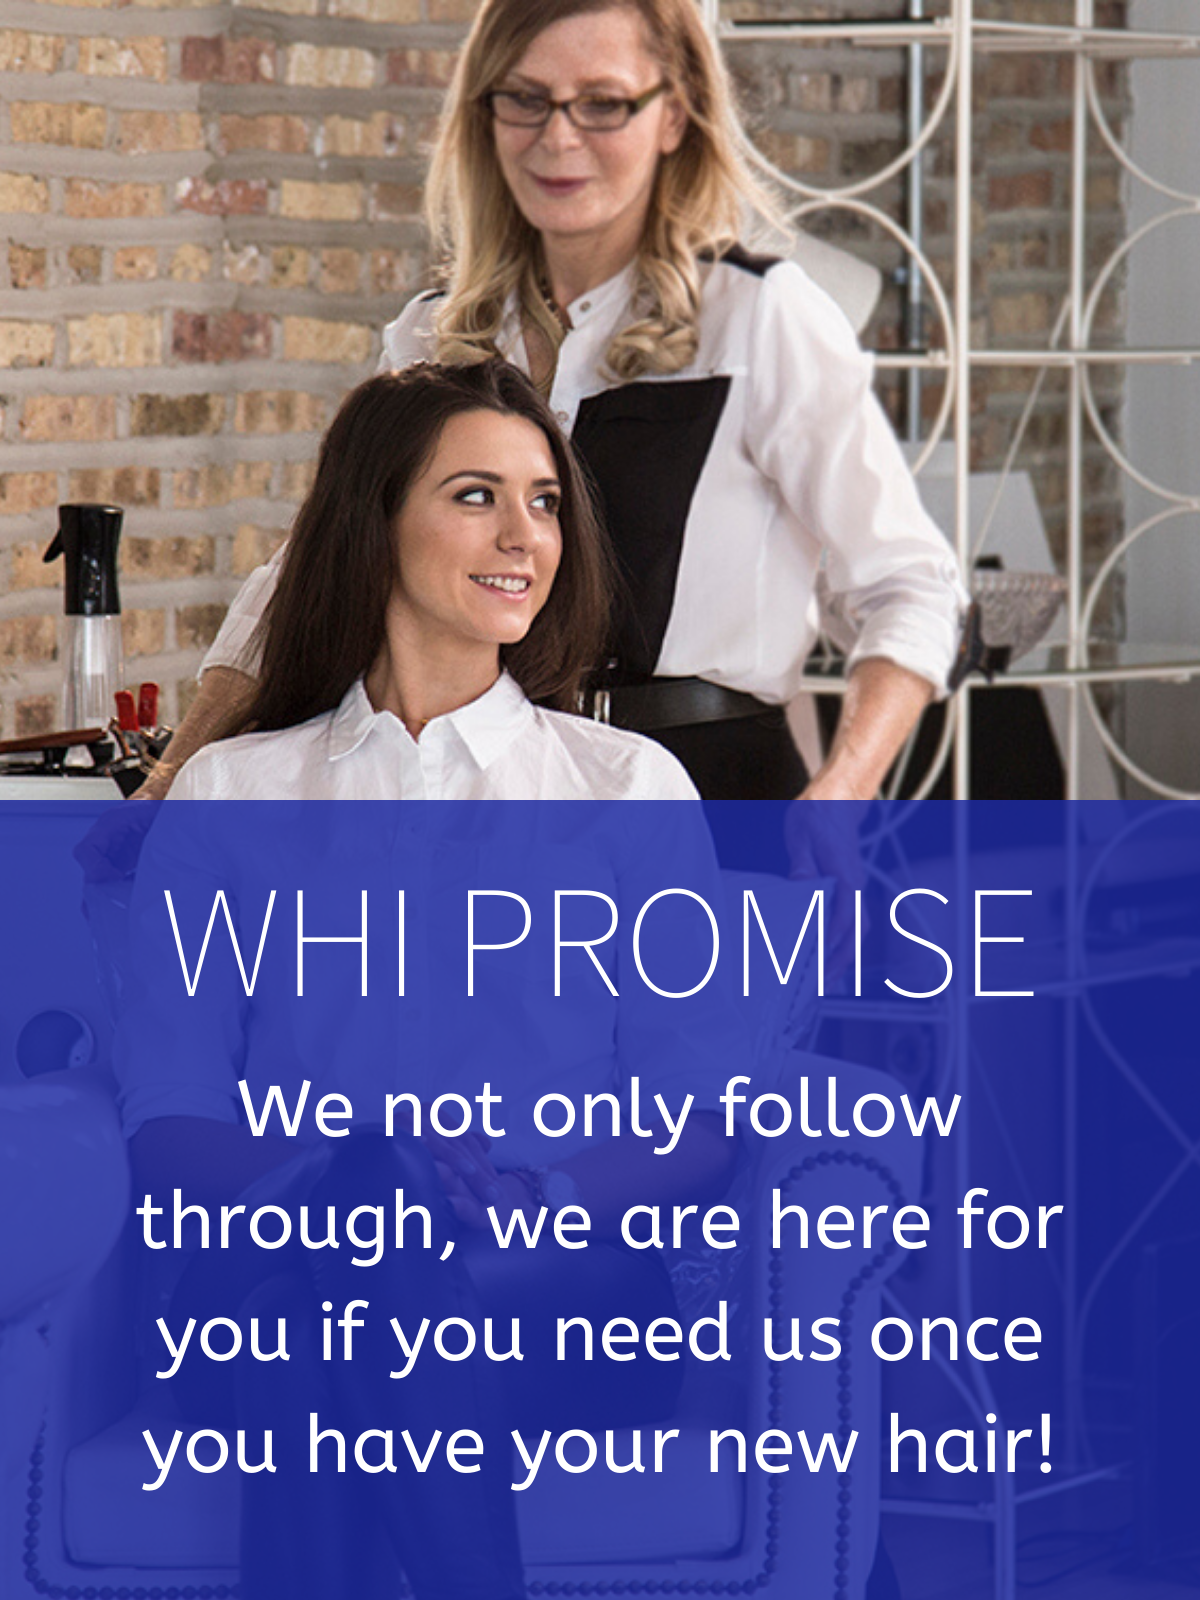 World Hair Institute Customer Promise